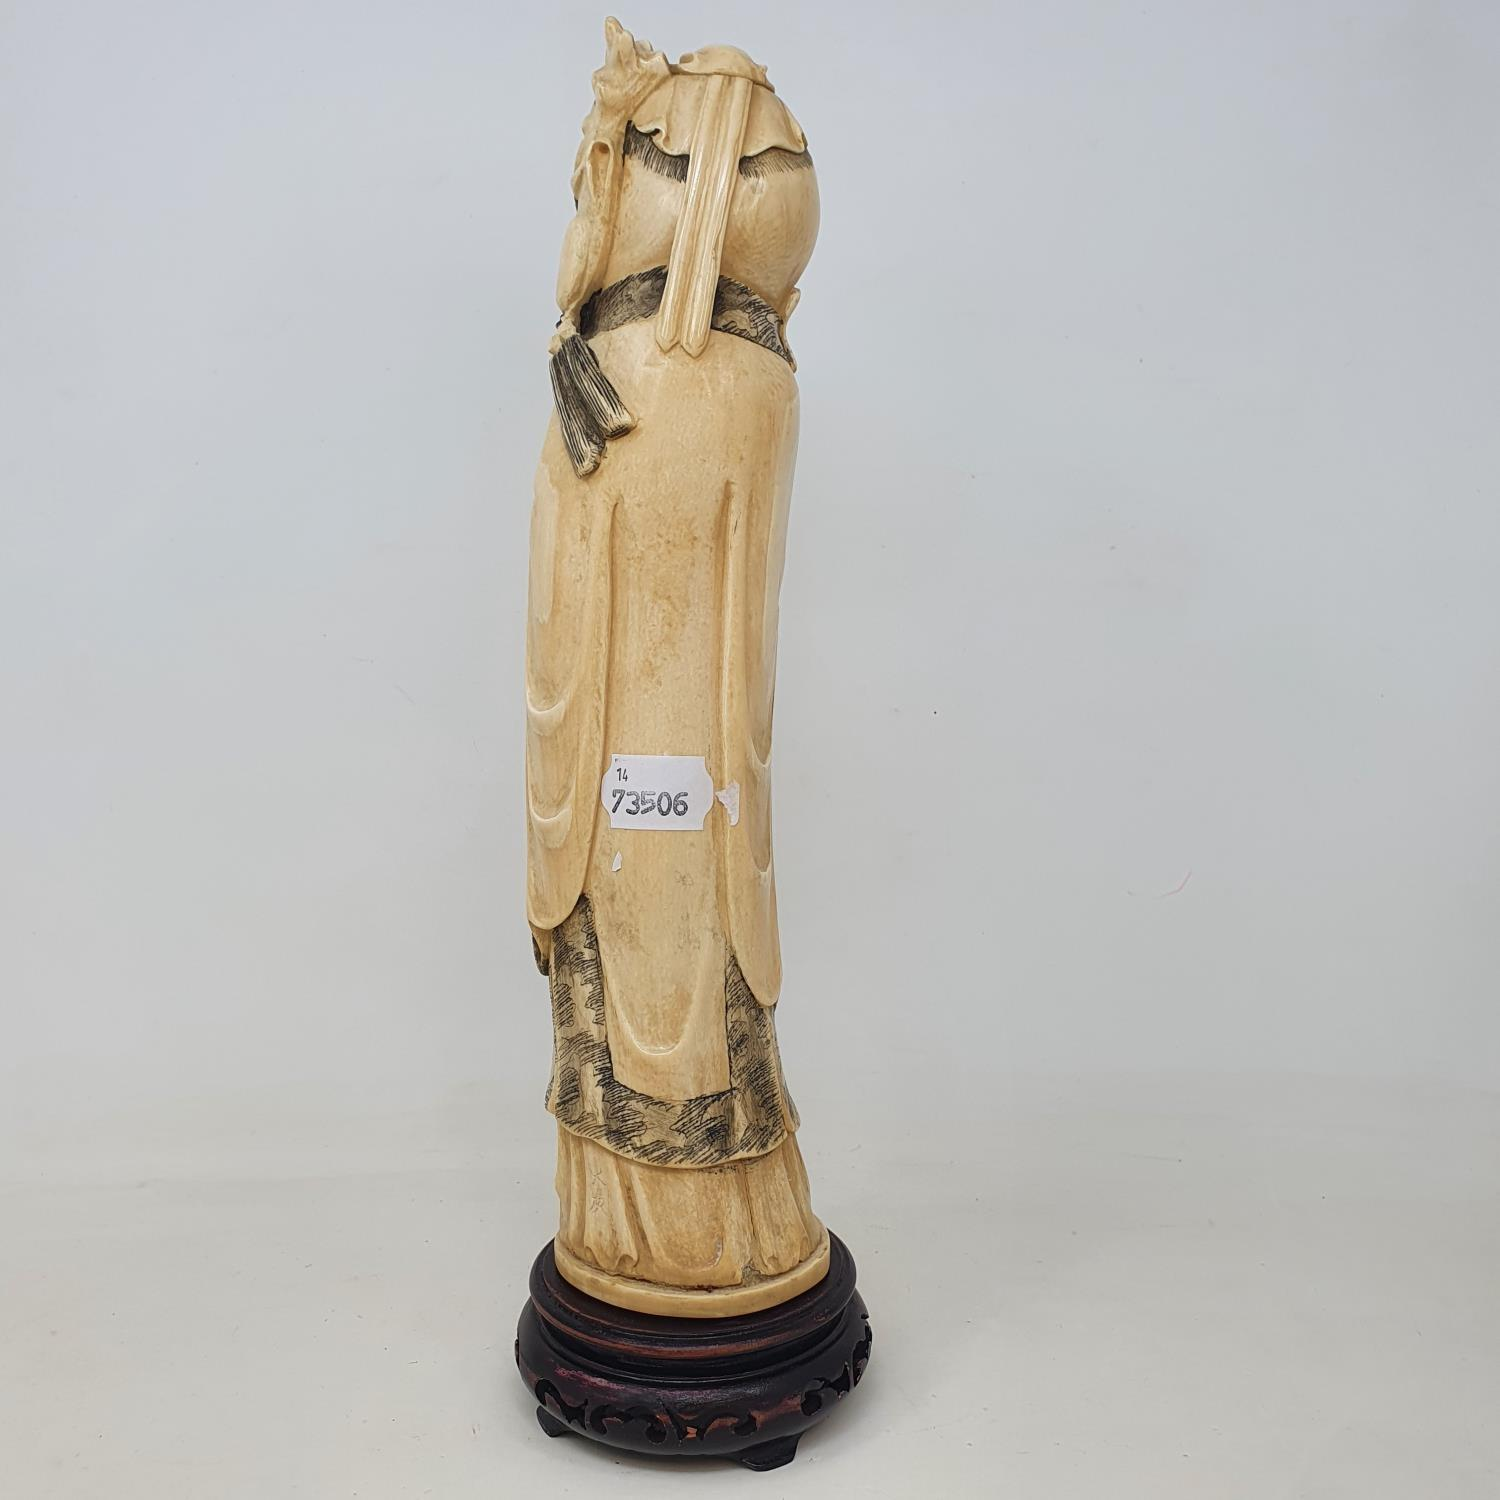 An early 20th century Chinese ivory tusk, carved in the form of Shou Lao, on wooden base, 38 cm - Image 3 of 3